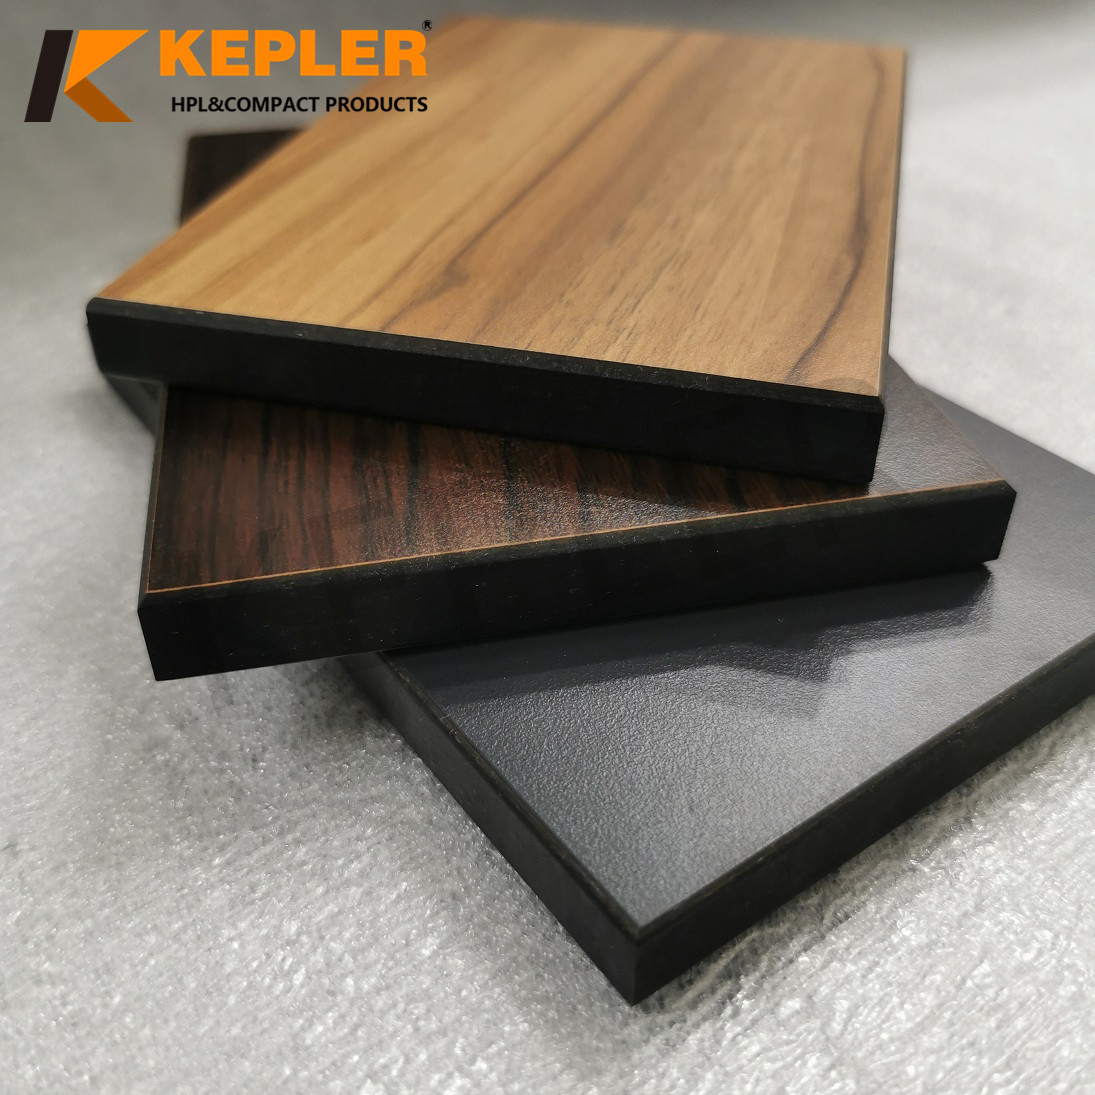 Kepler HPL Compact Laminate Board for Table Top